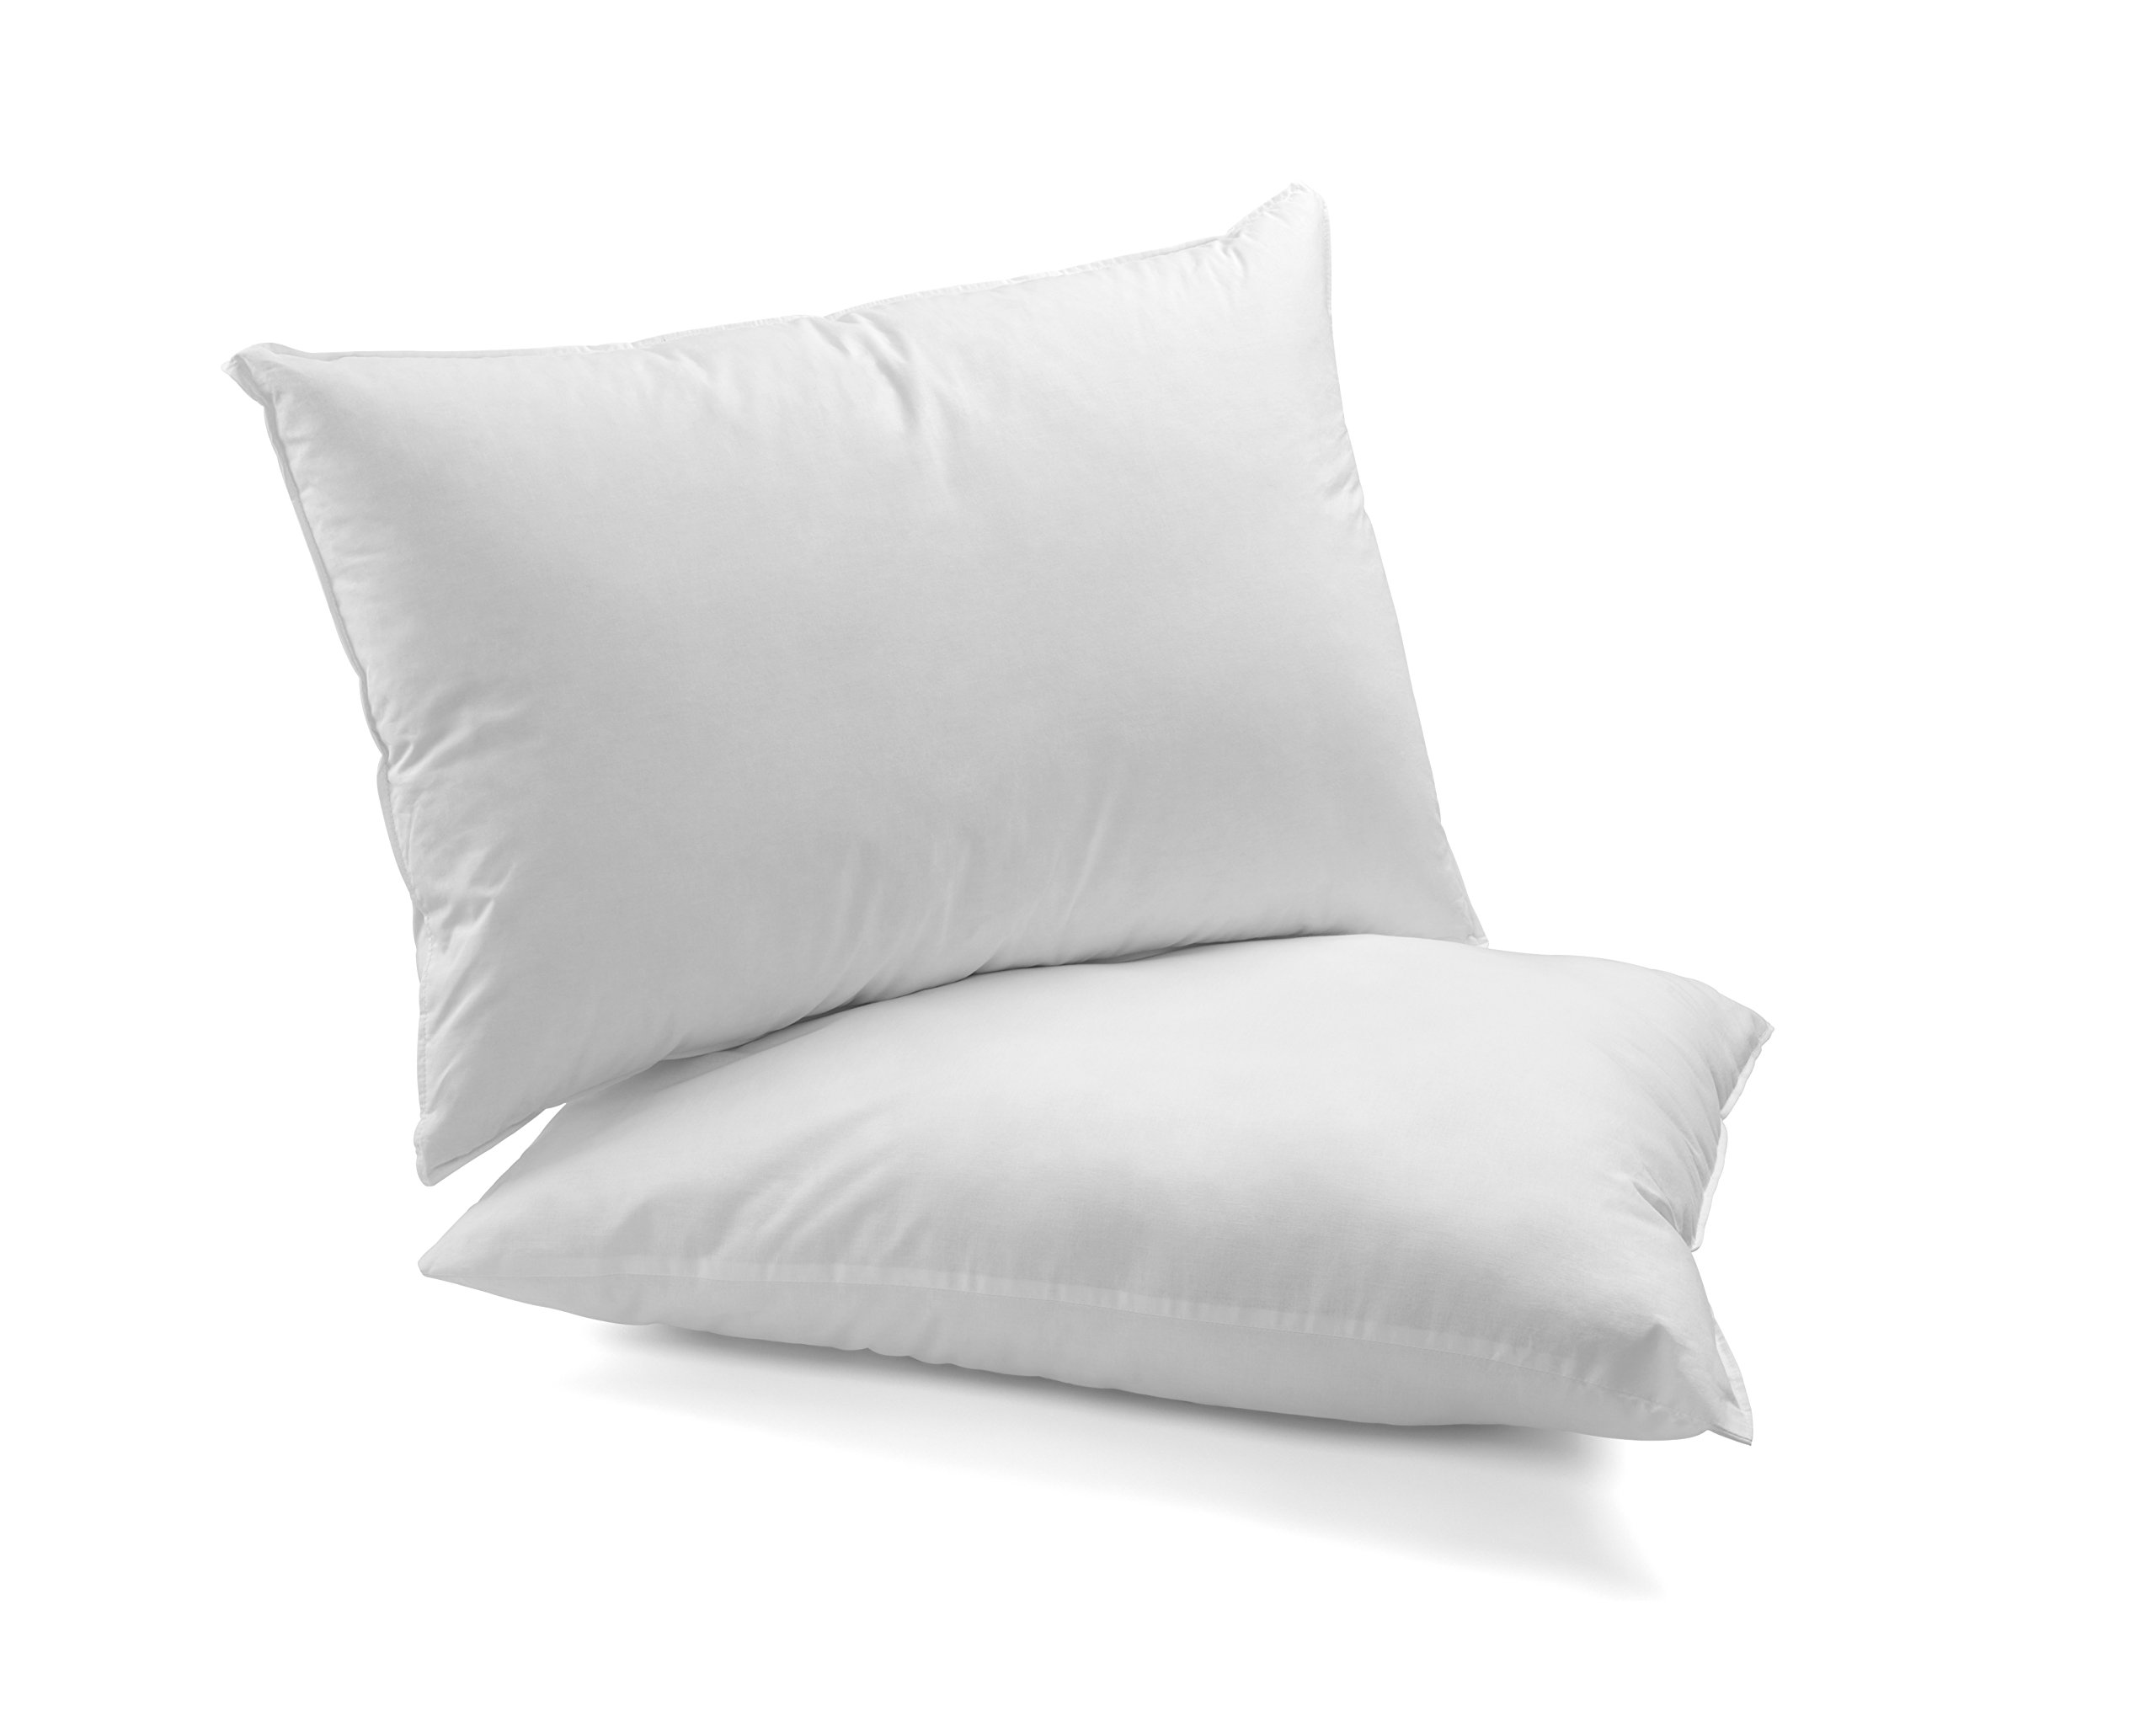 Set of 2 Hotel Style Double Down Surround Pillows - As Seen in Many 5 Star Hotels and Resorts. (Standard)